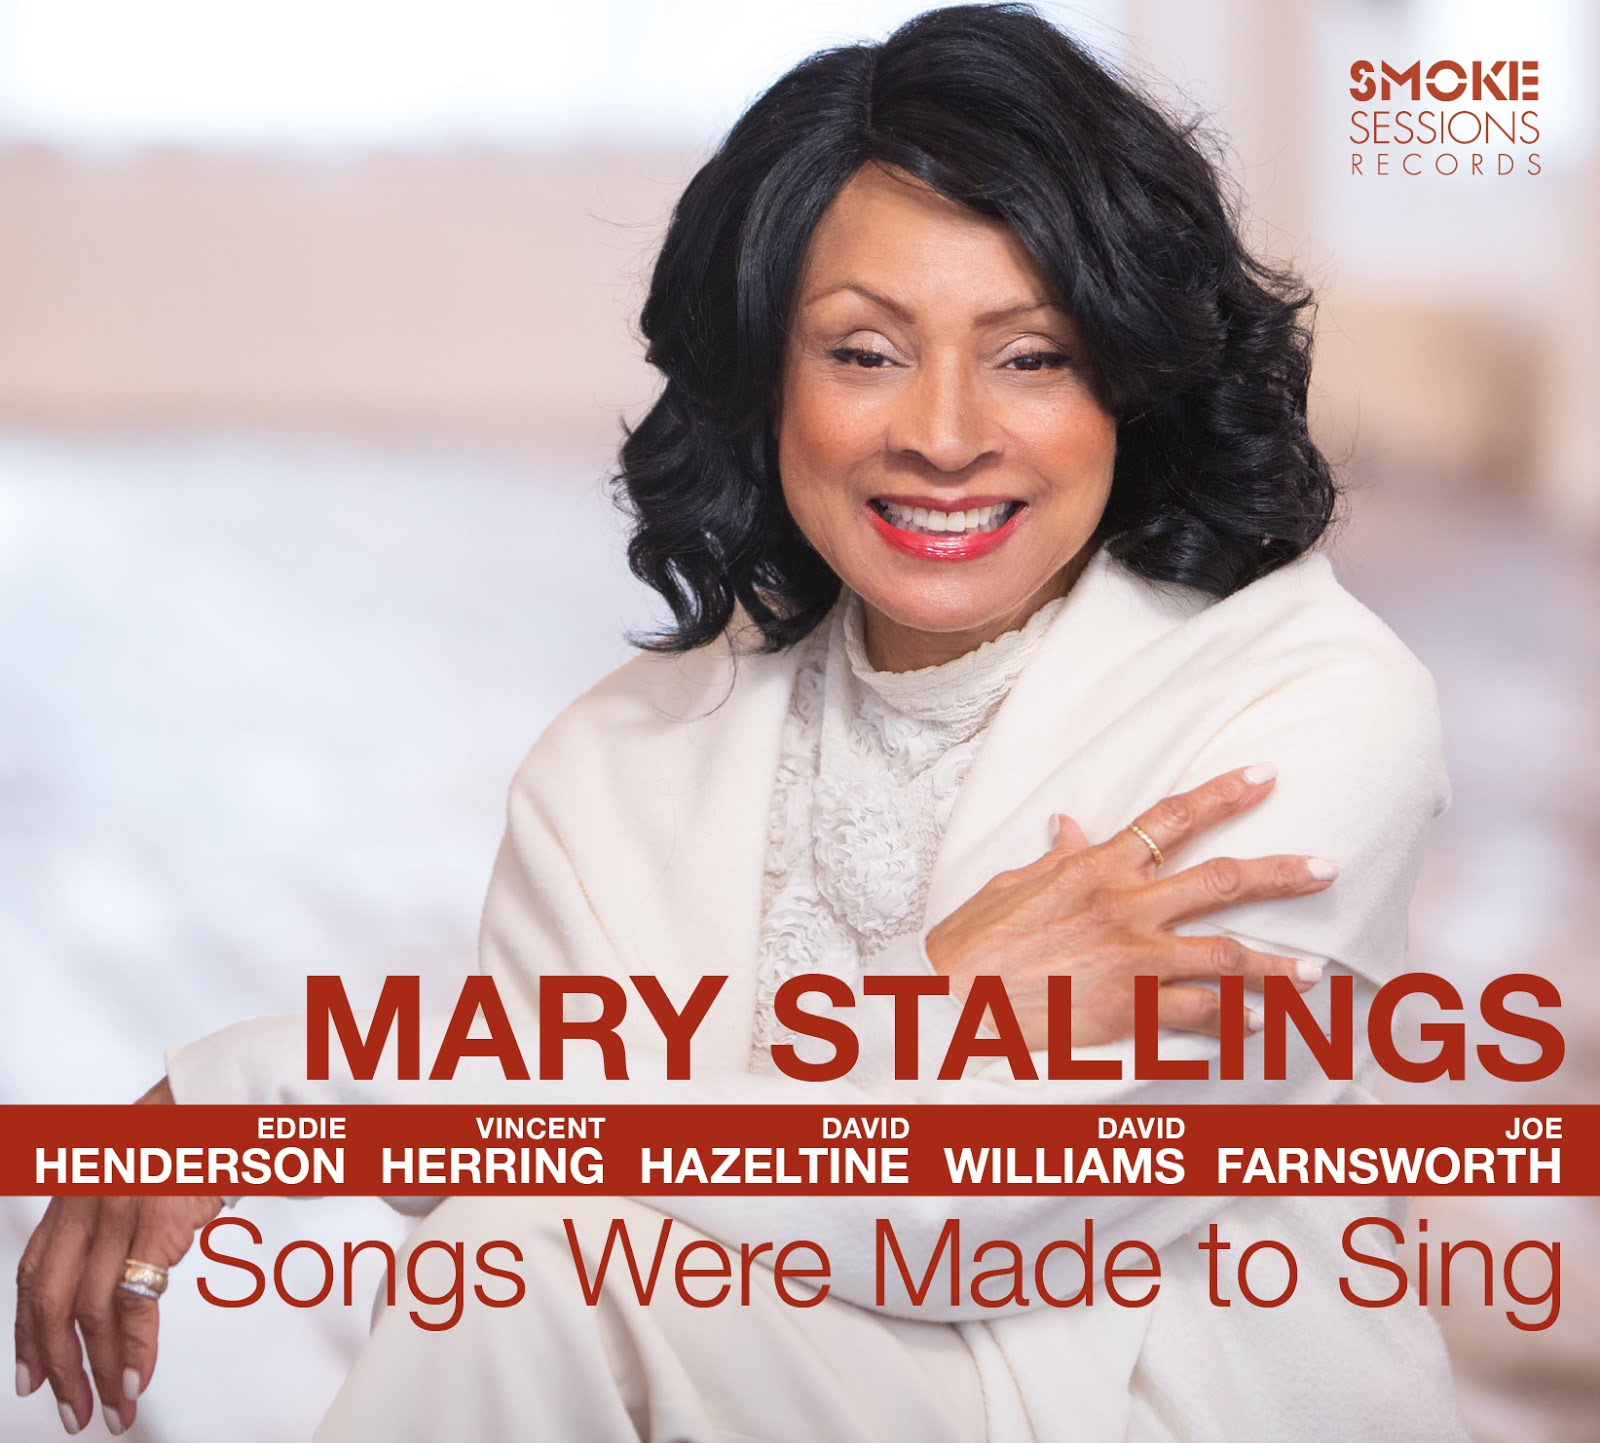 MARY STALLINGS: SONGS WERE MADE TO SING